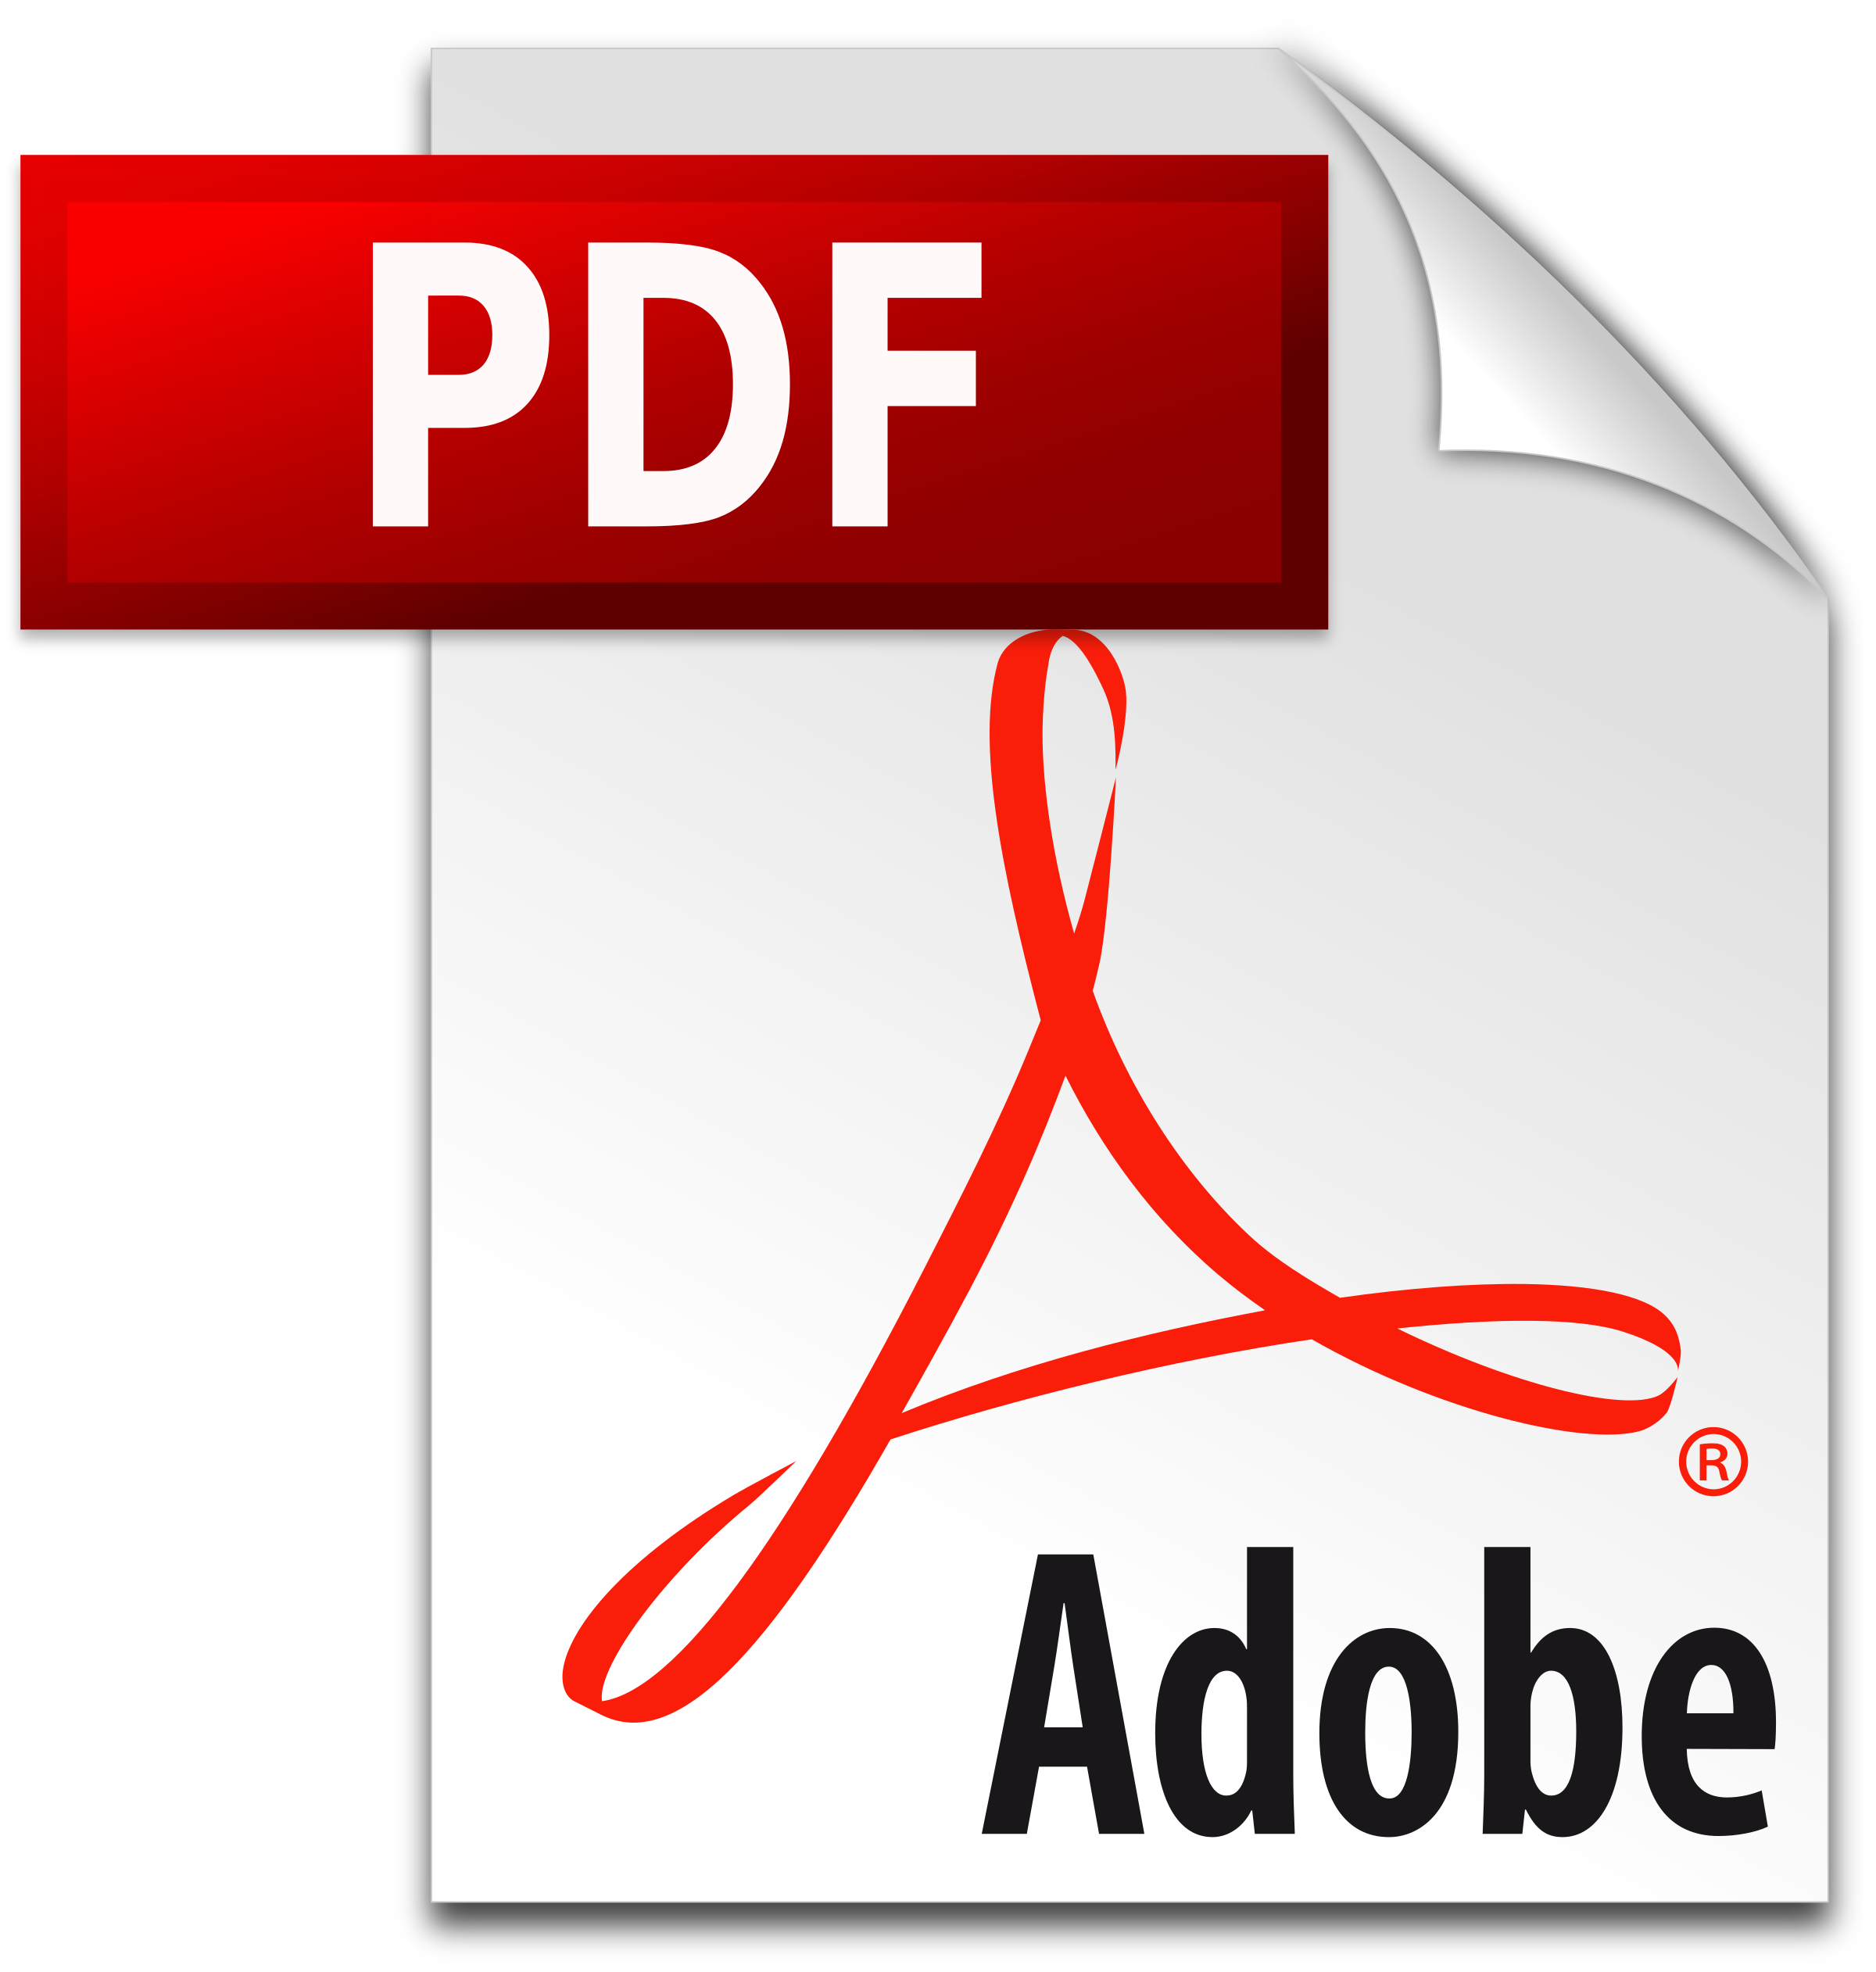 PDF icon Logo PNG Transparent & SVG Vector.